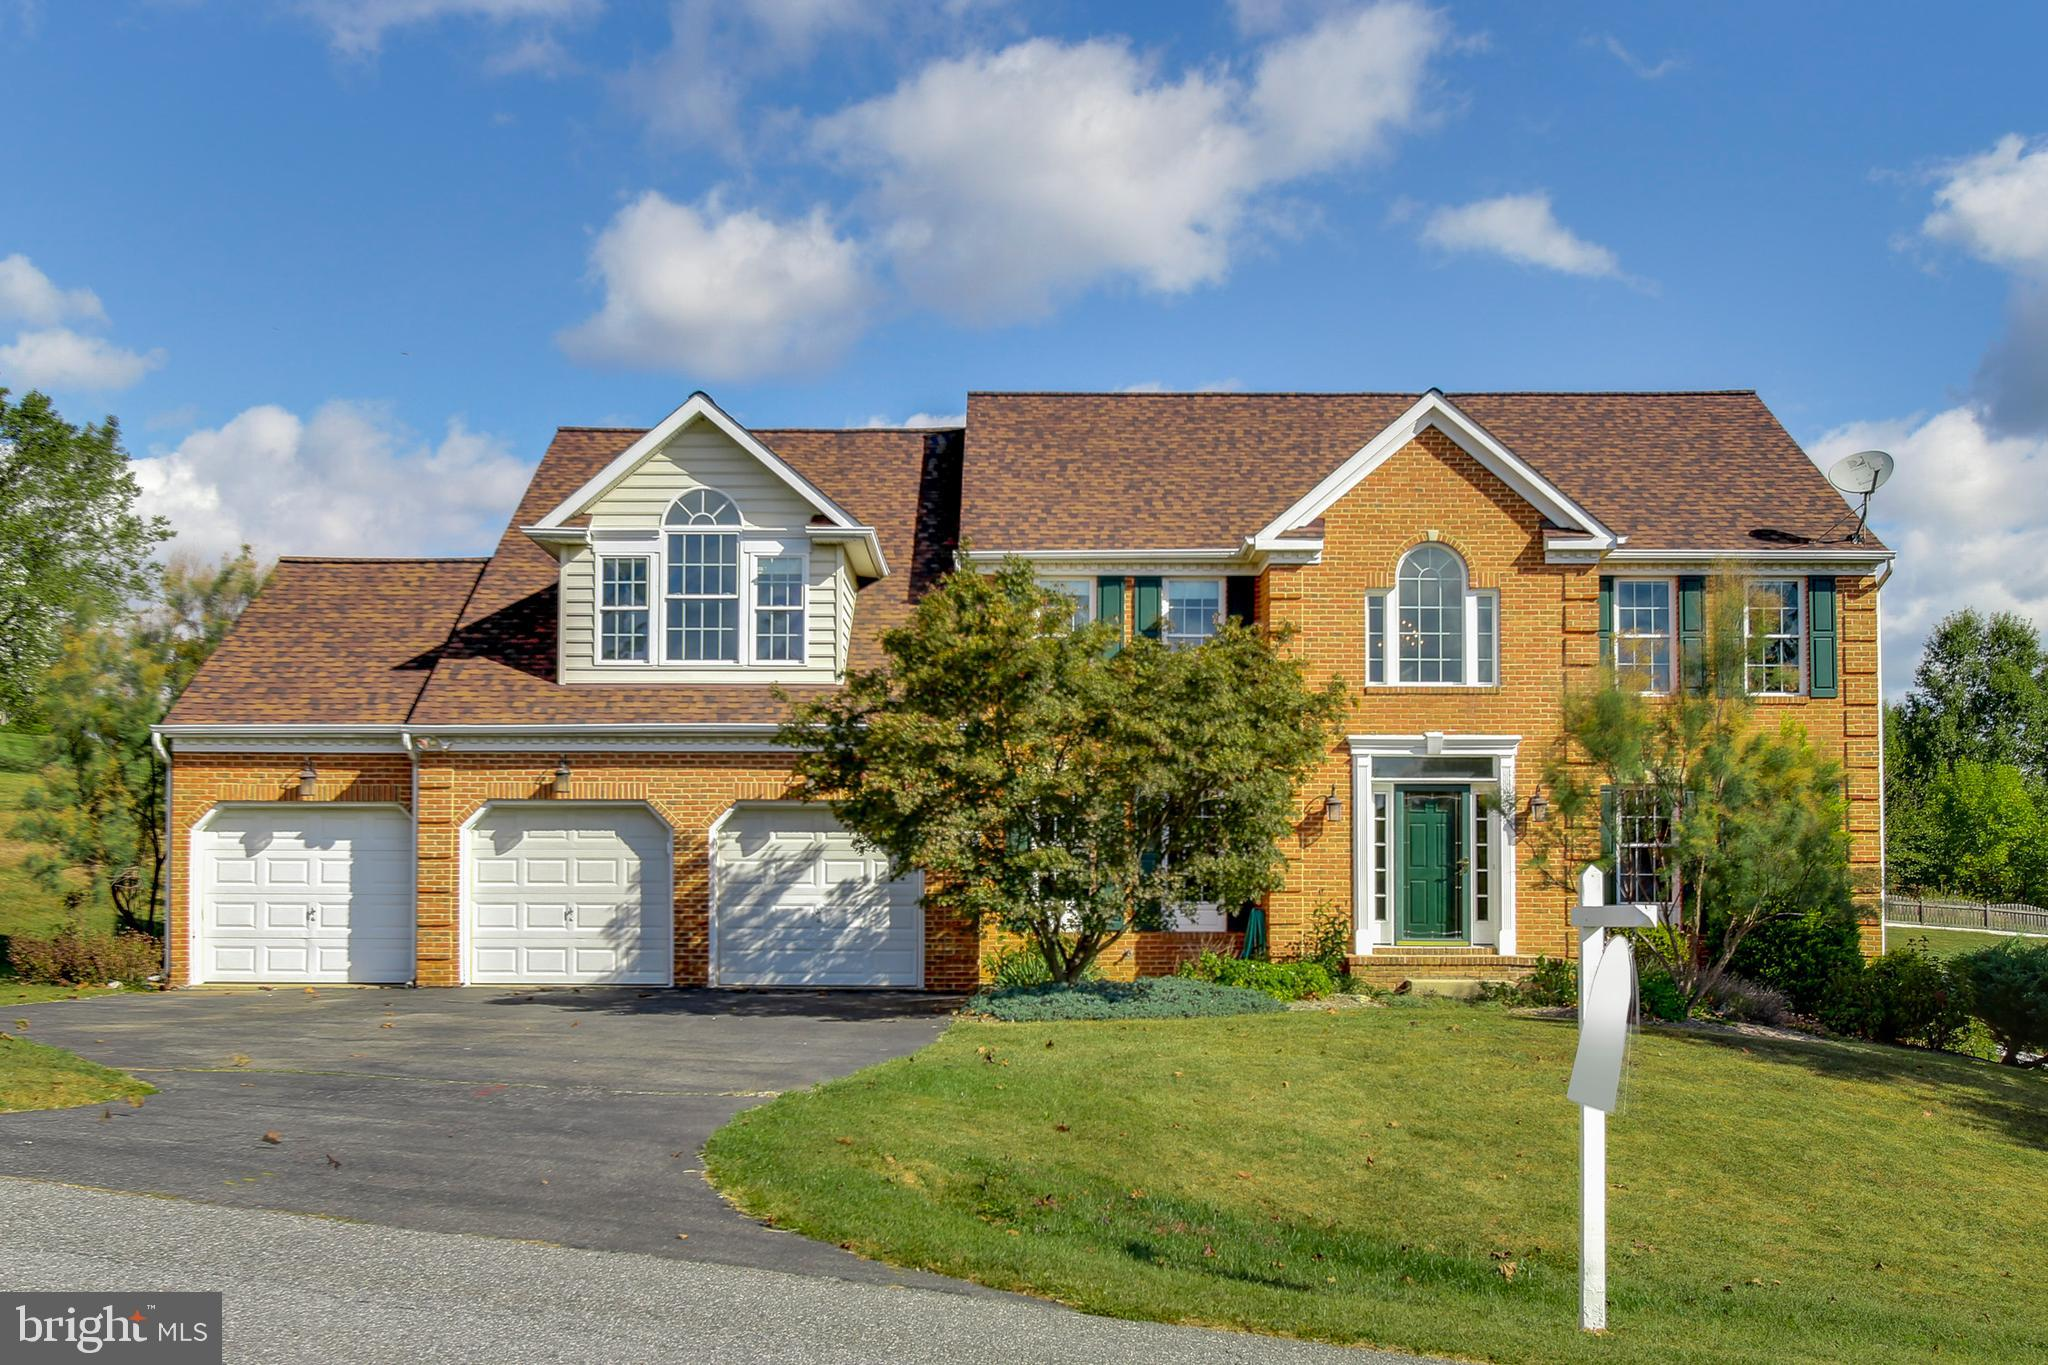 13692 SAMHILL Dr, Mount Airy, MD, 21771